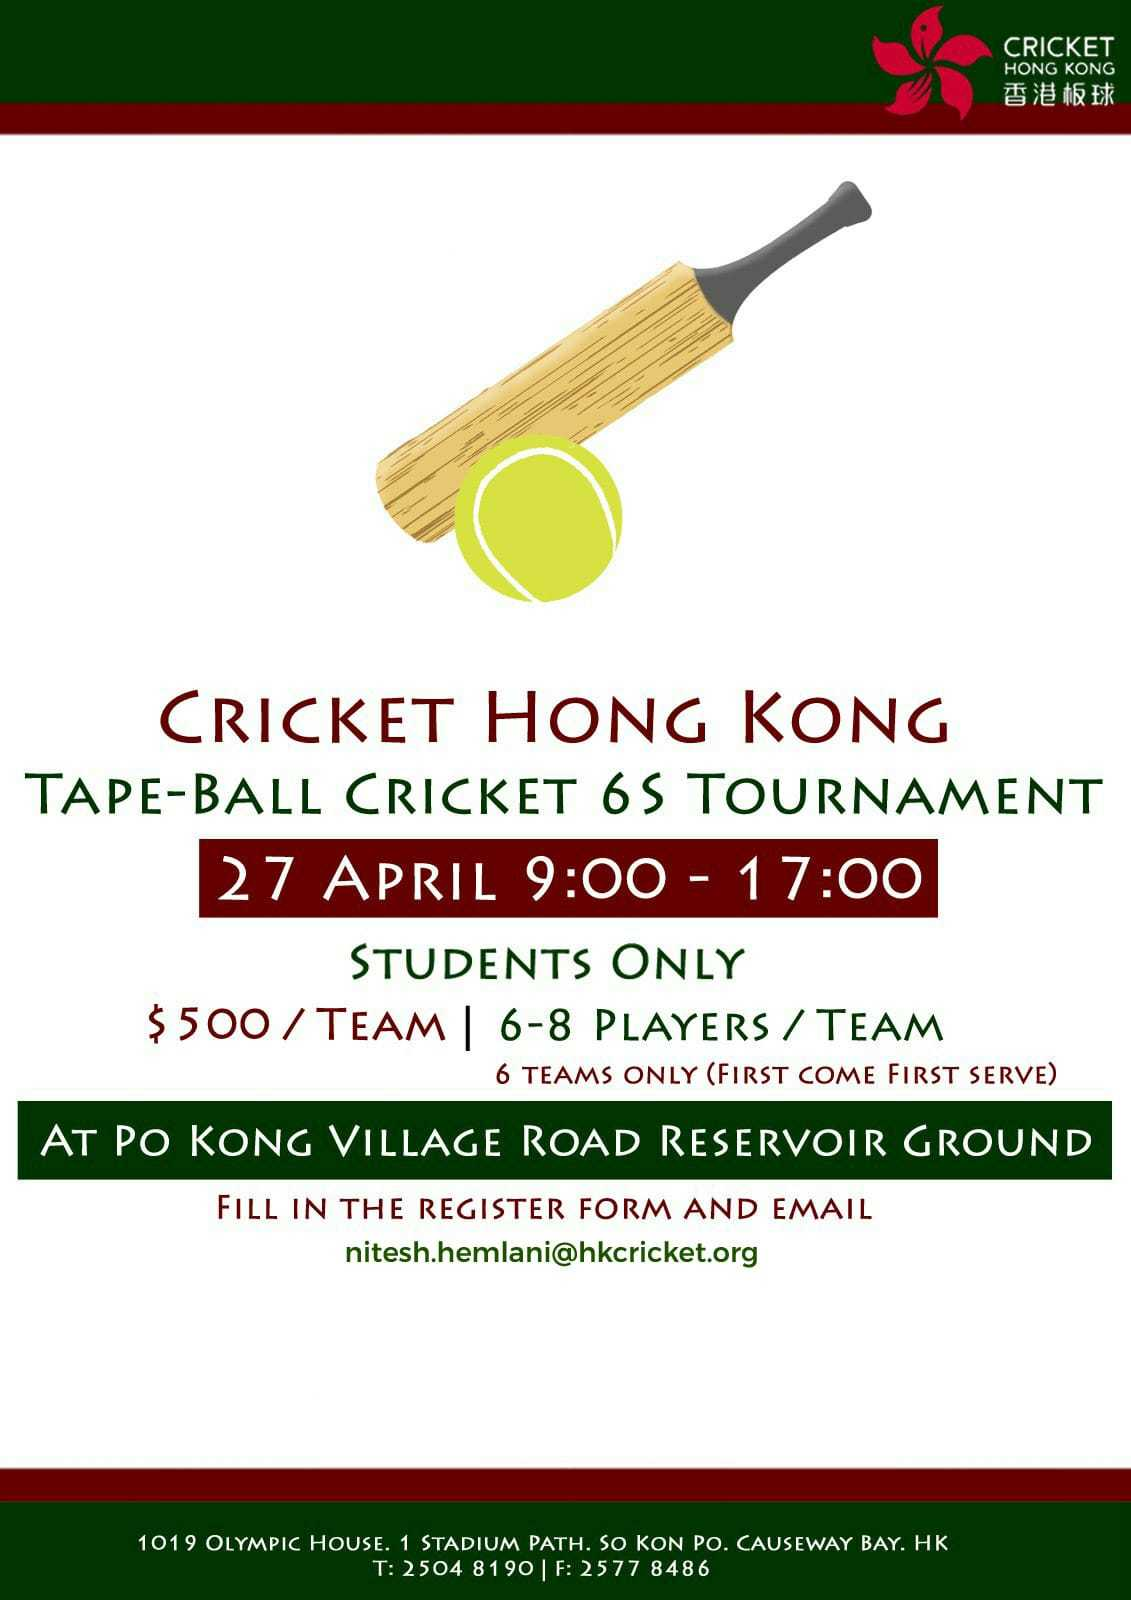 Student Cricket 6s Tape ball Tournament is opened for